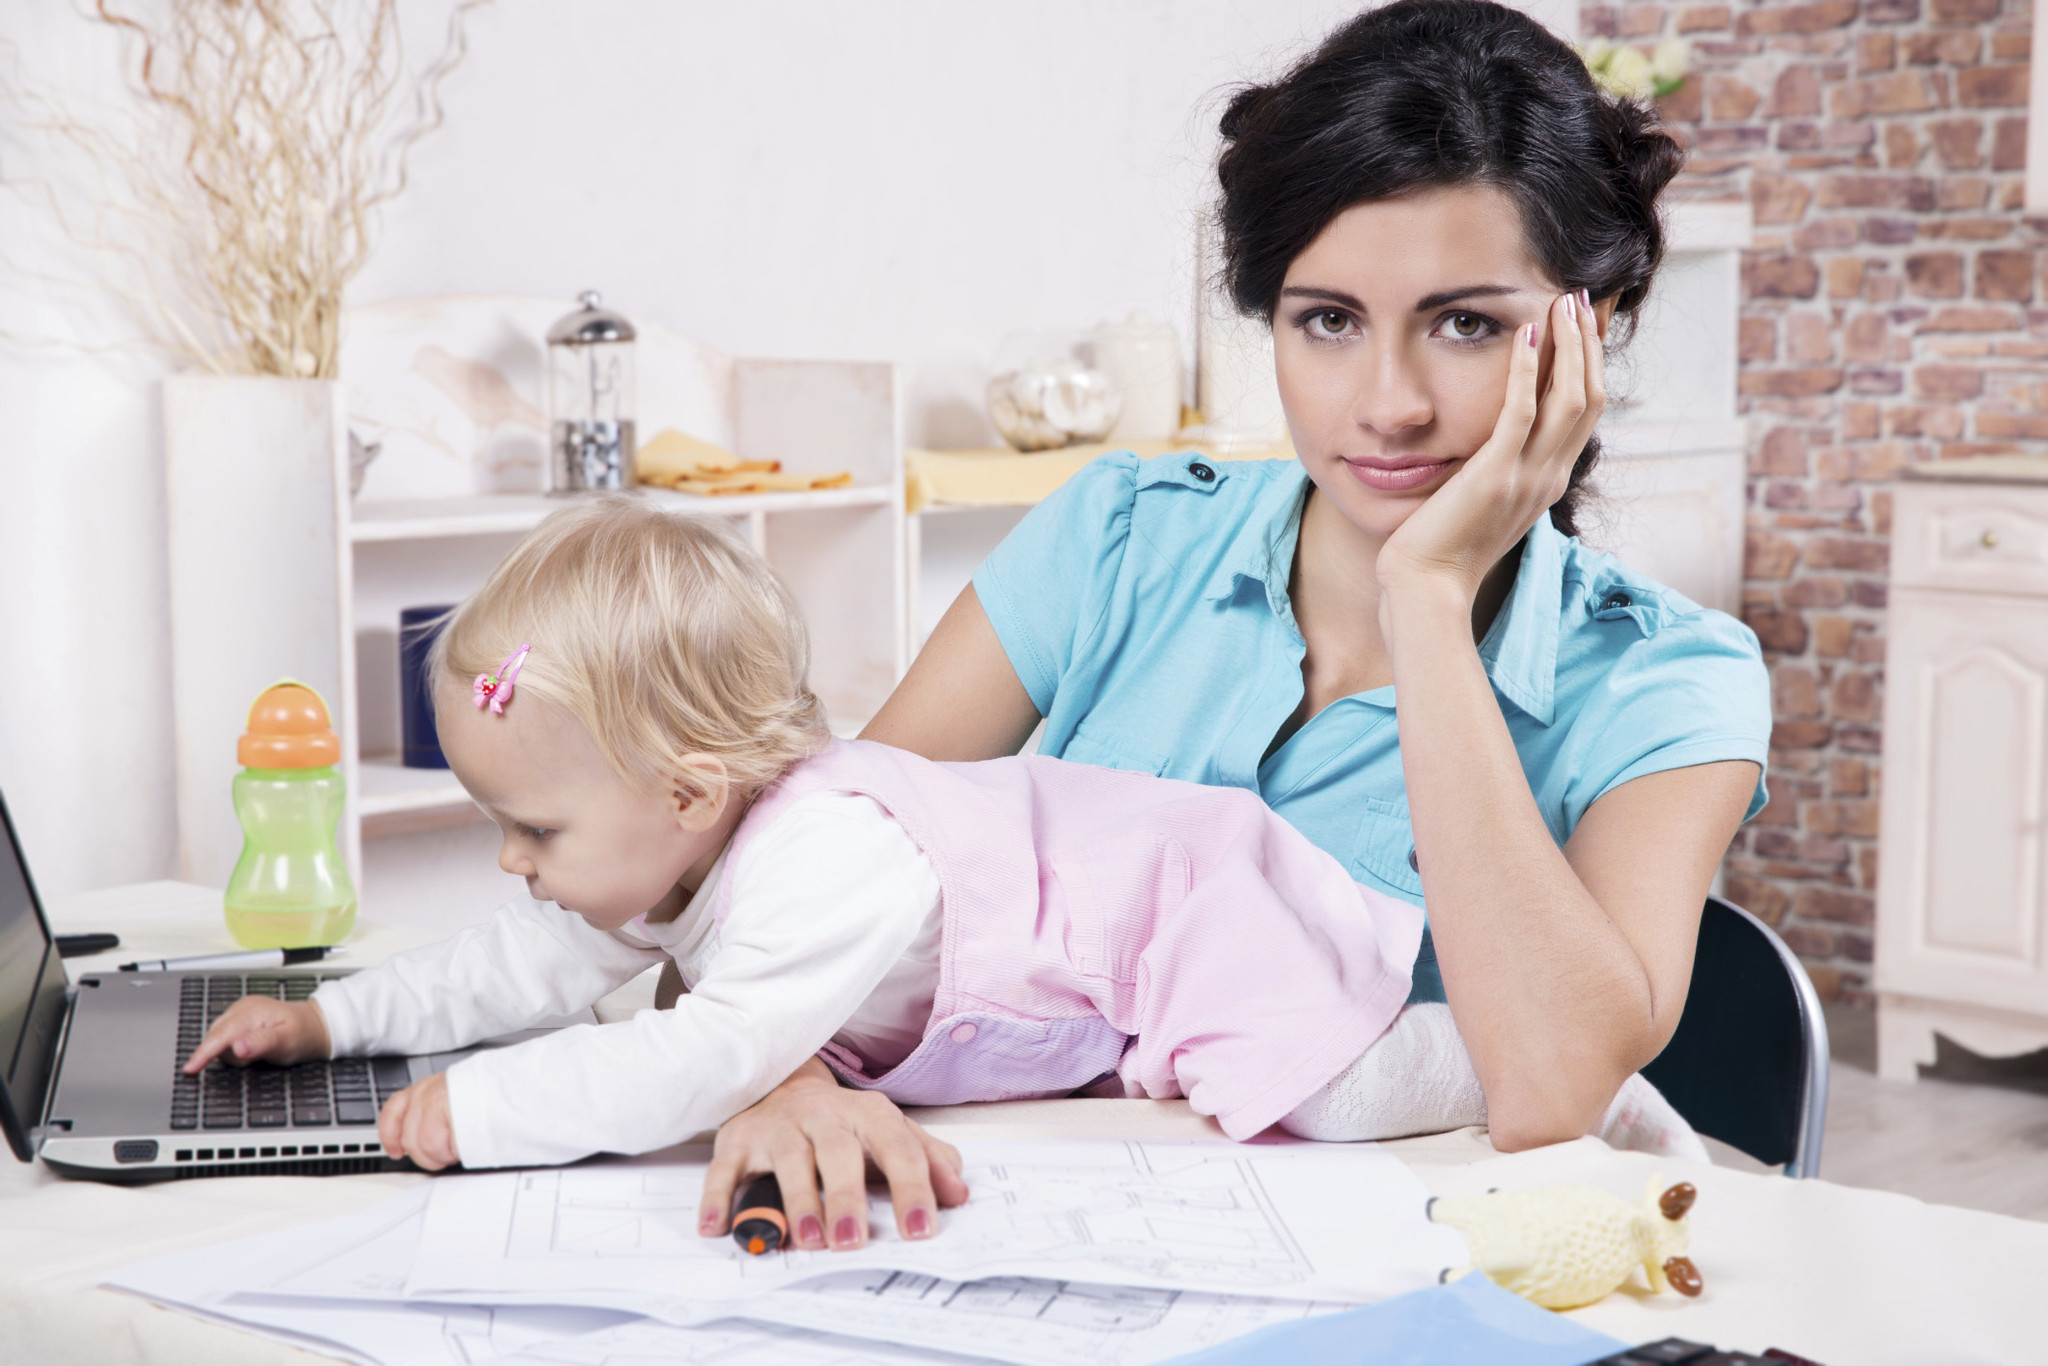 Report Florida is th worst state for working moms Sun Sentinel